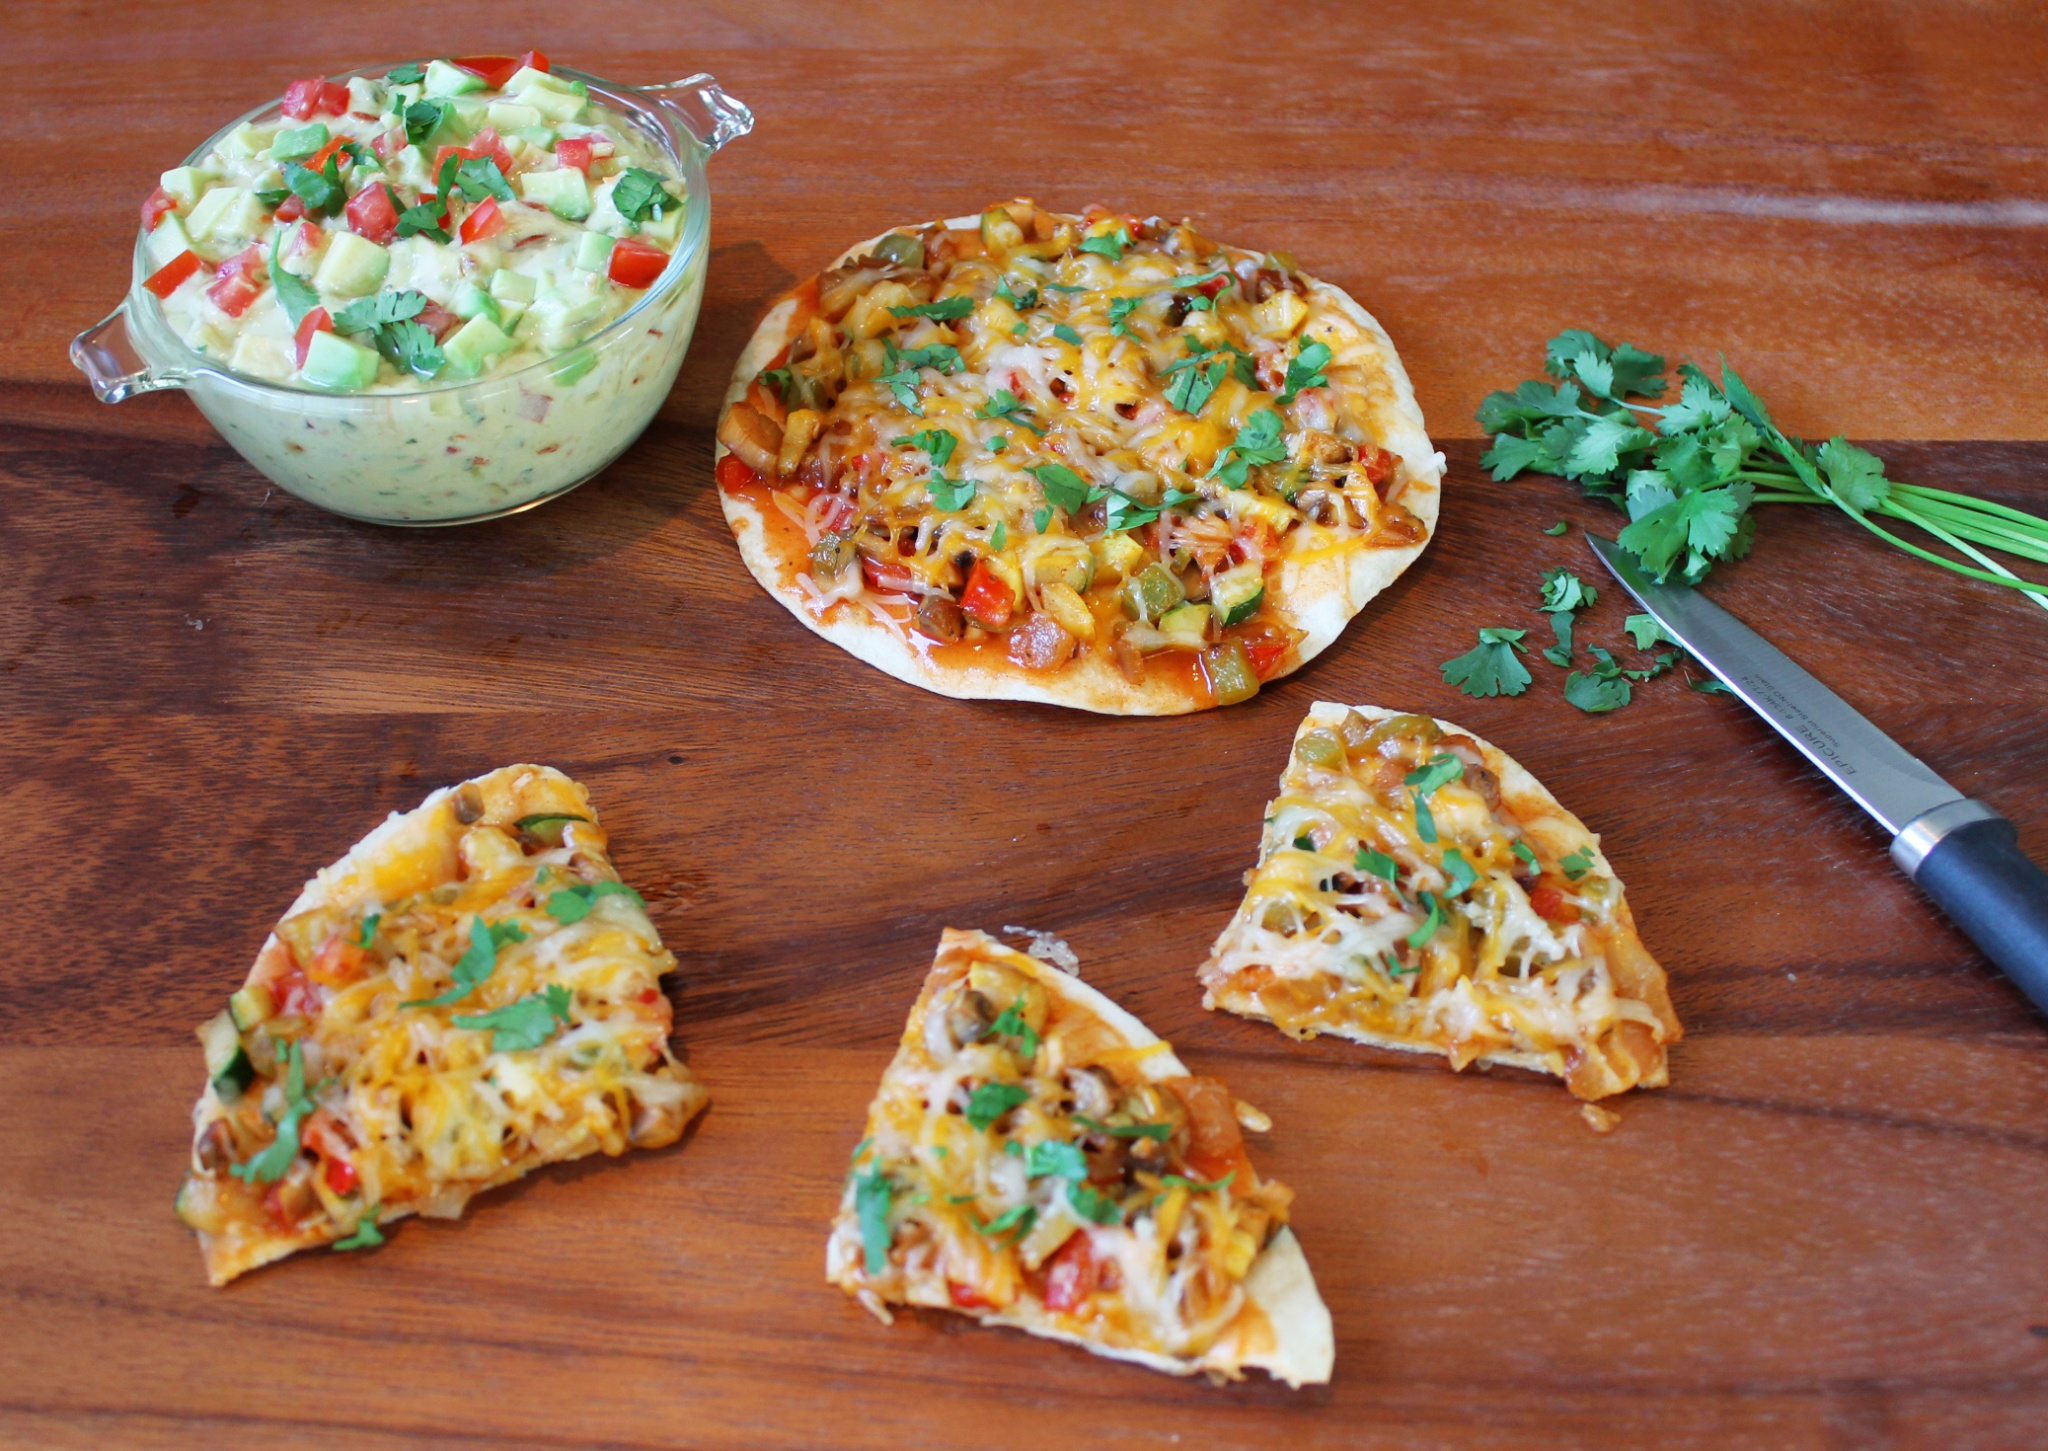 Vegetable Quesadillas and Creamy Avocado Salsa Dip